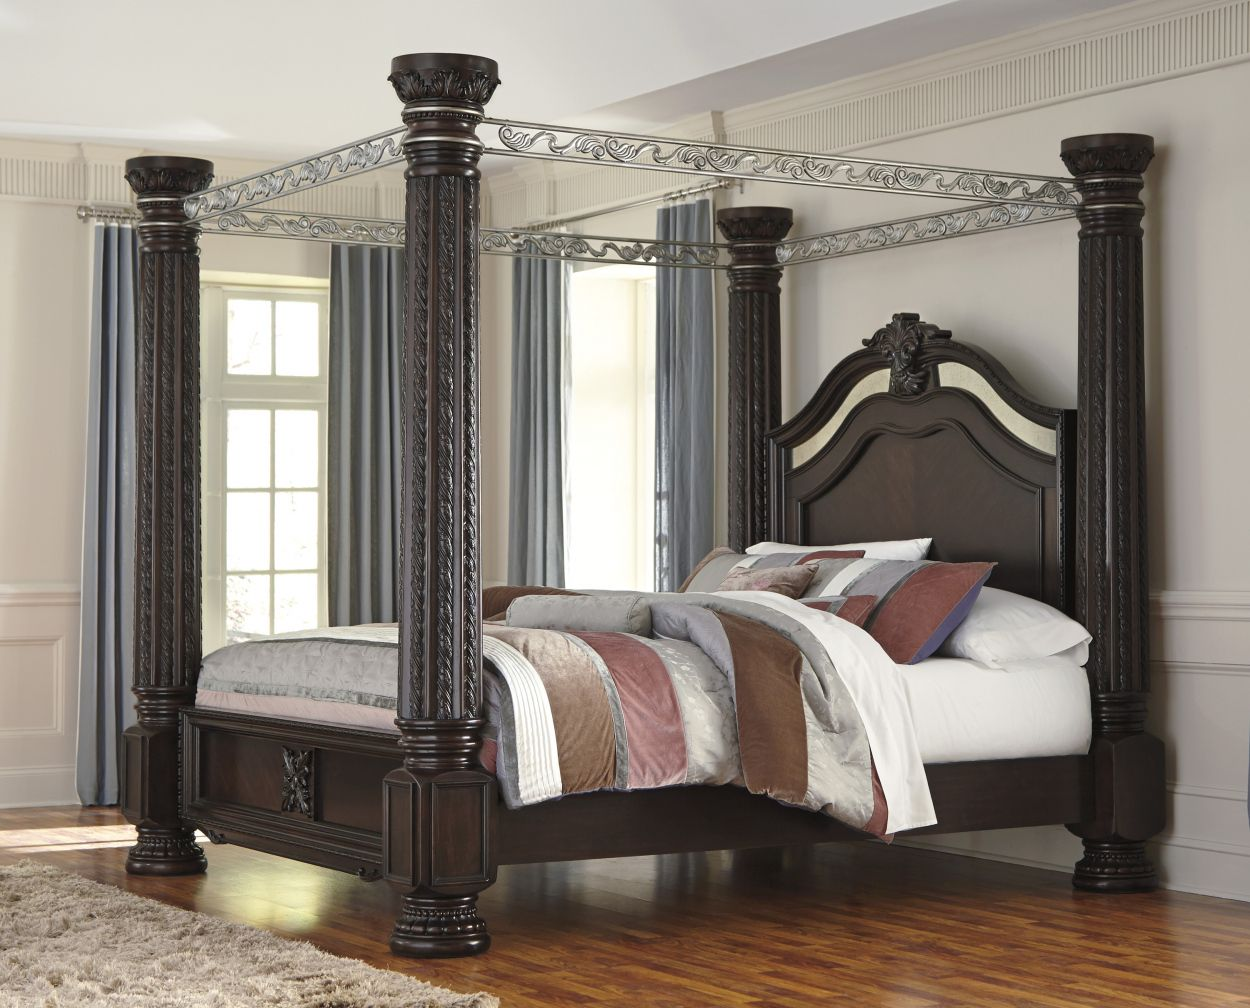 Bedroom Furniture Canopy Bed - Best Furniture Gallery Check more at //searchfororangecountyhomes & Bedroom Furniture Canopy Bed - Best Furniture Gallery Check more ...